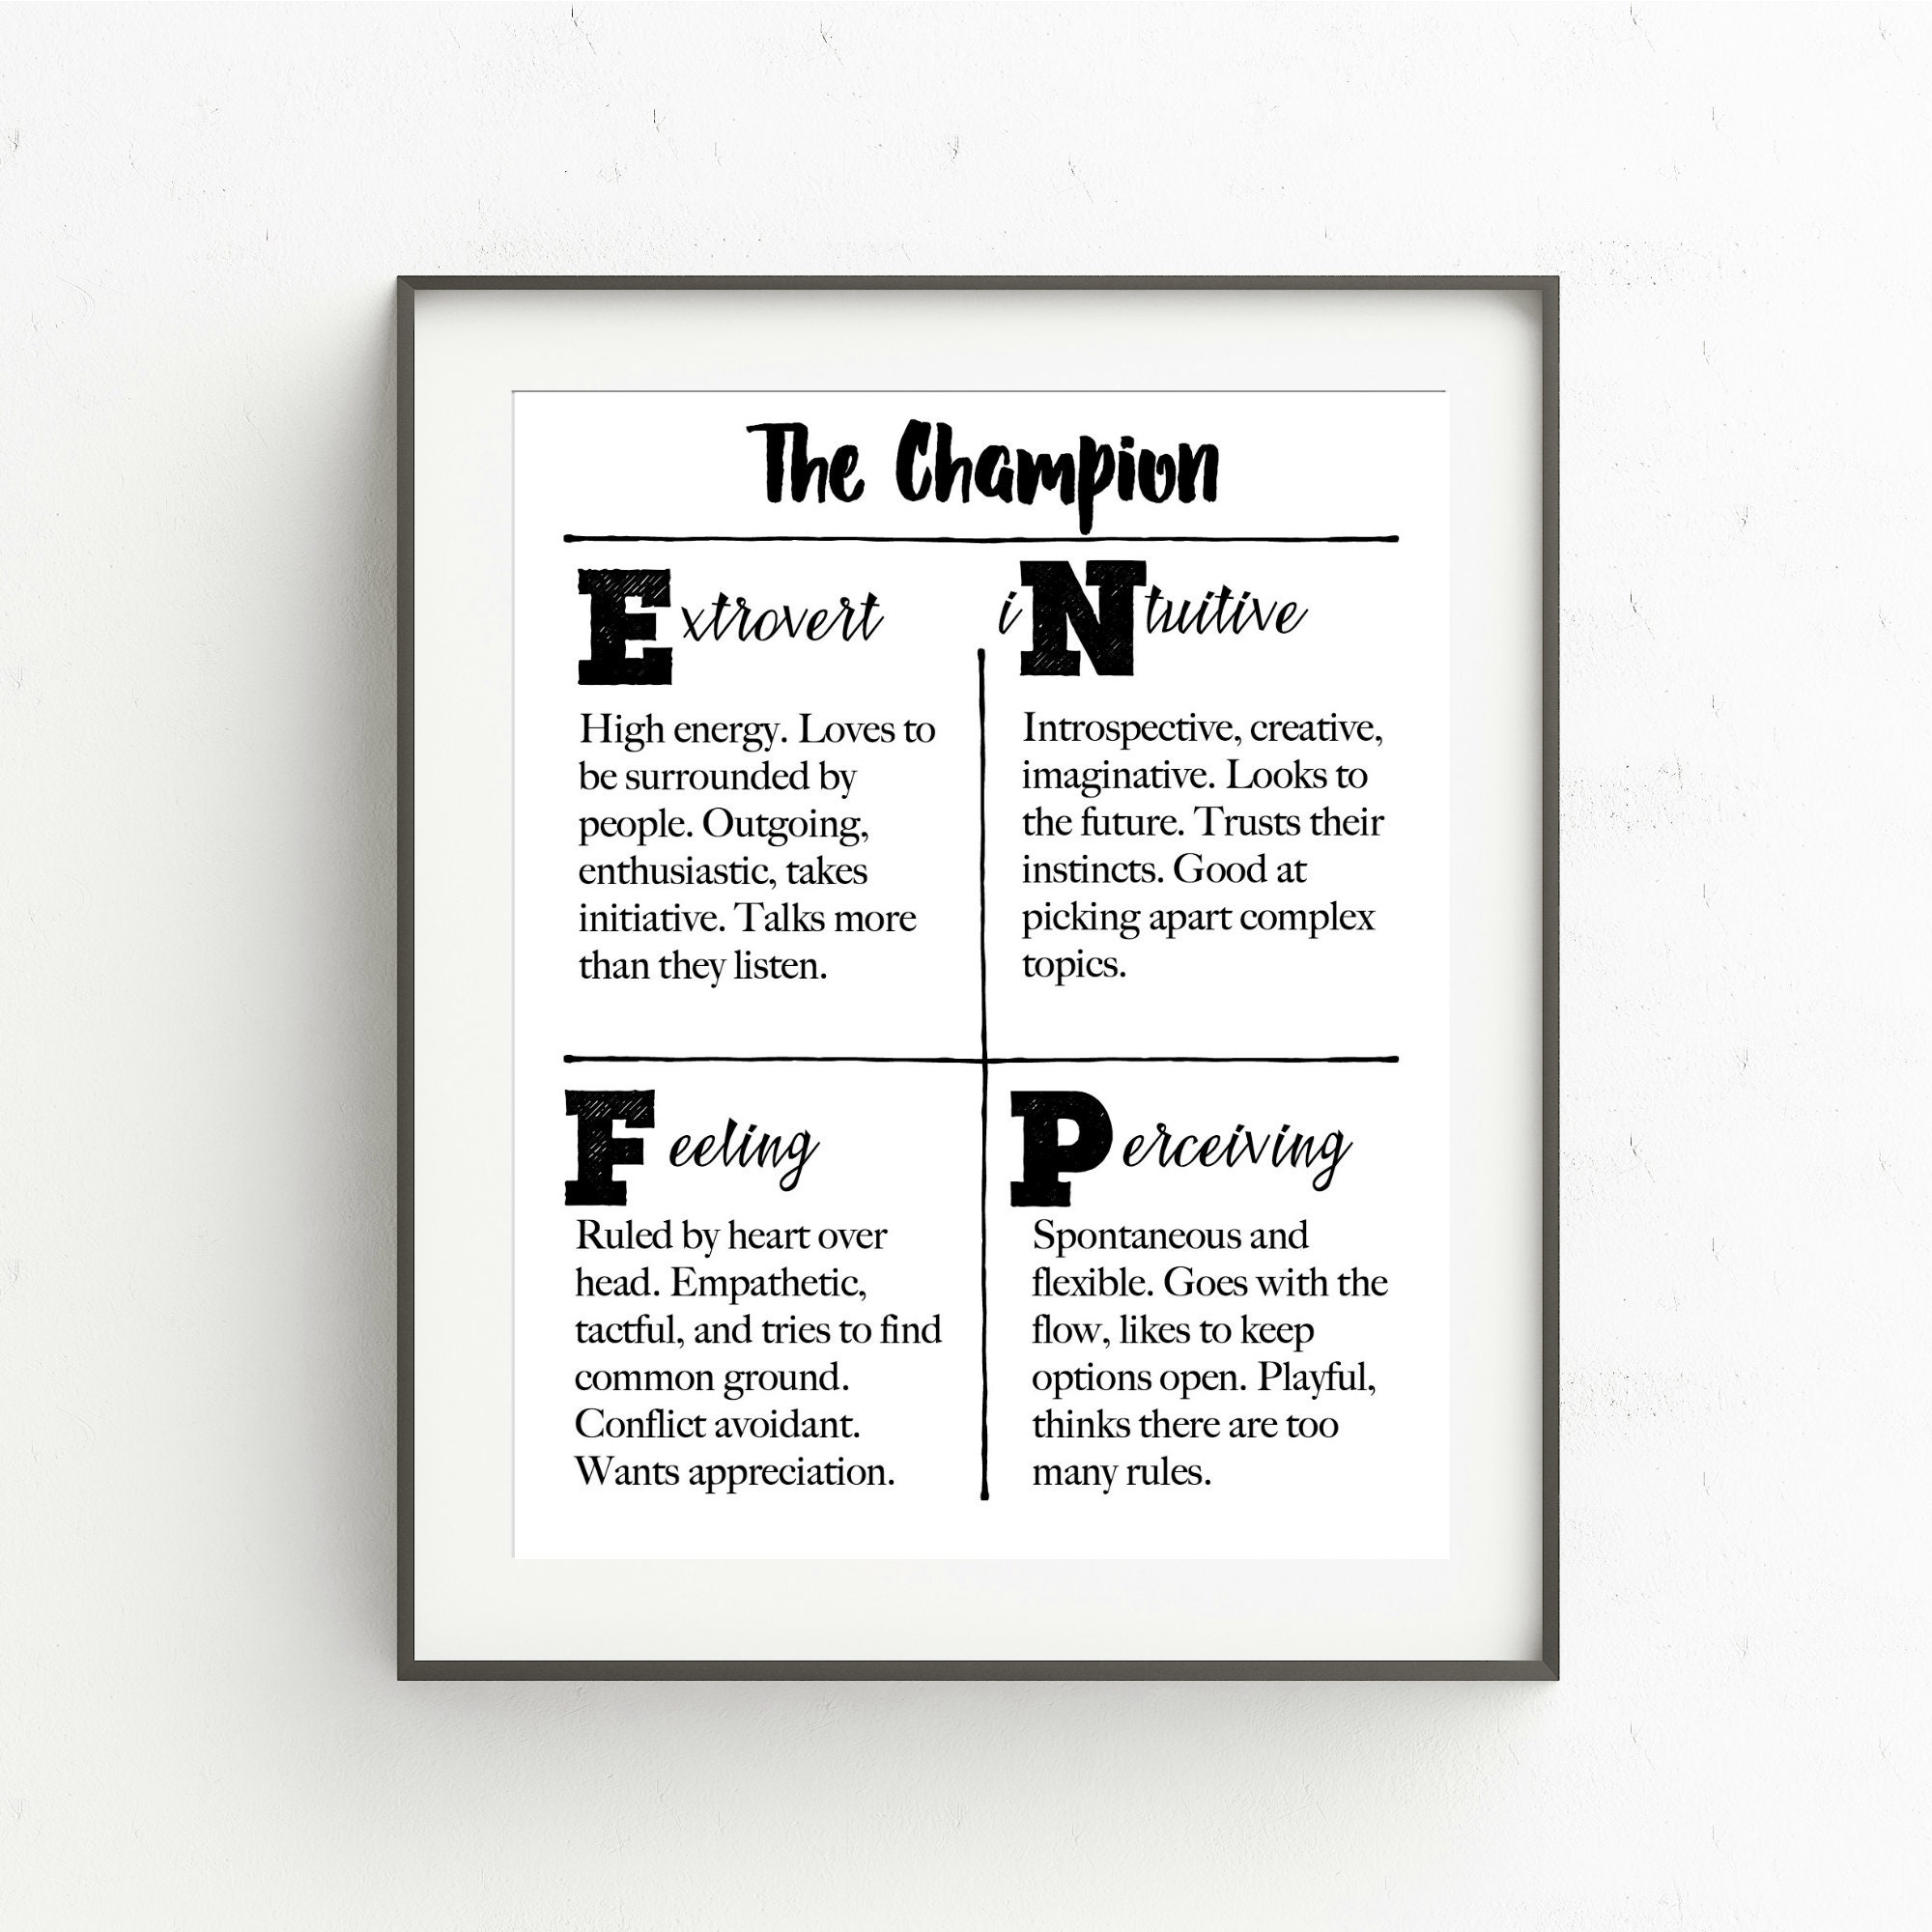 graphic regarding Printable Myers Briggs Personality Test called Myers-Briggs Temperament Qualities Printable ENFP, The Winner